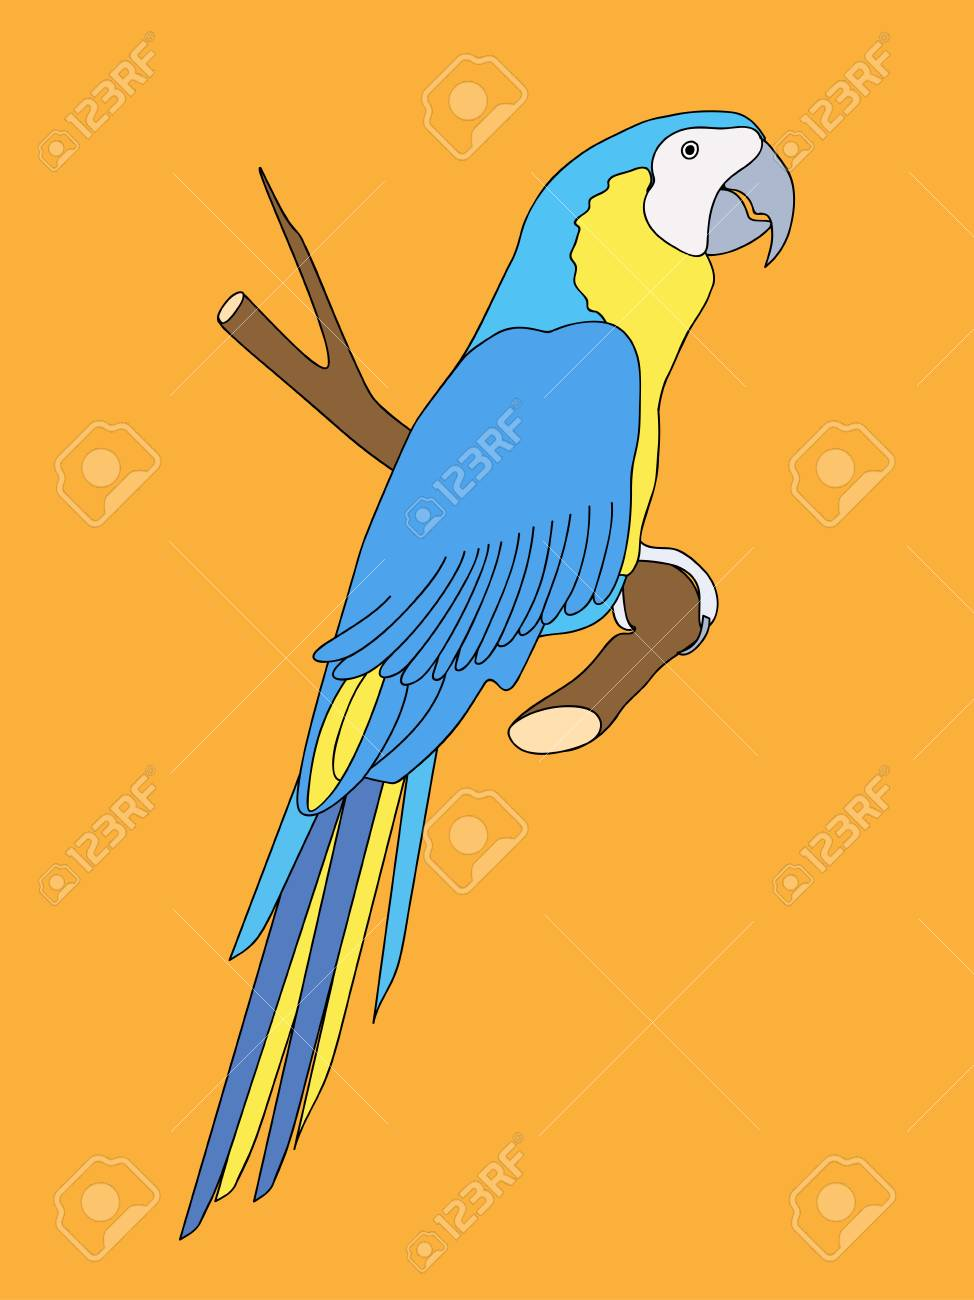 Hand Drawn Realistic Parrot On The Tree For Home Art, Decorate ...